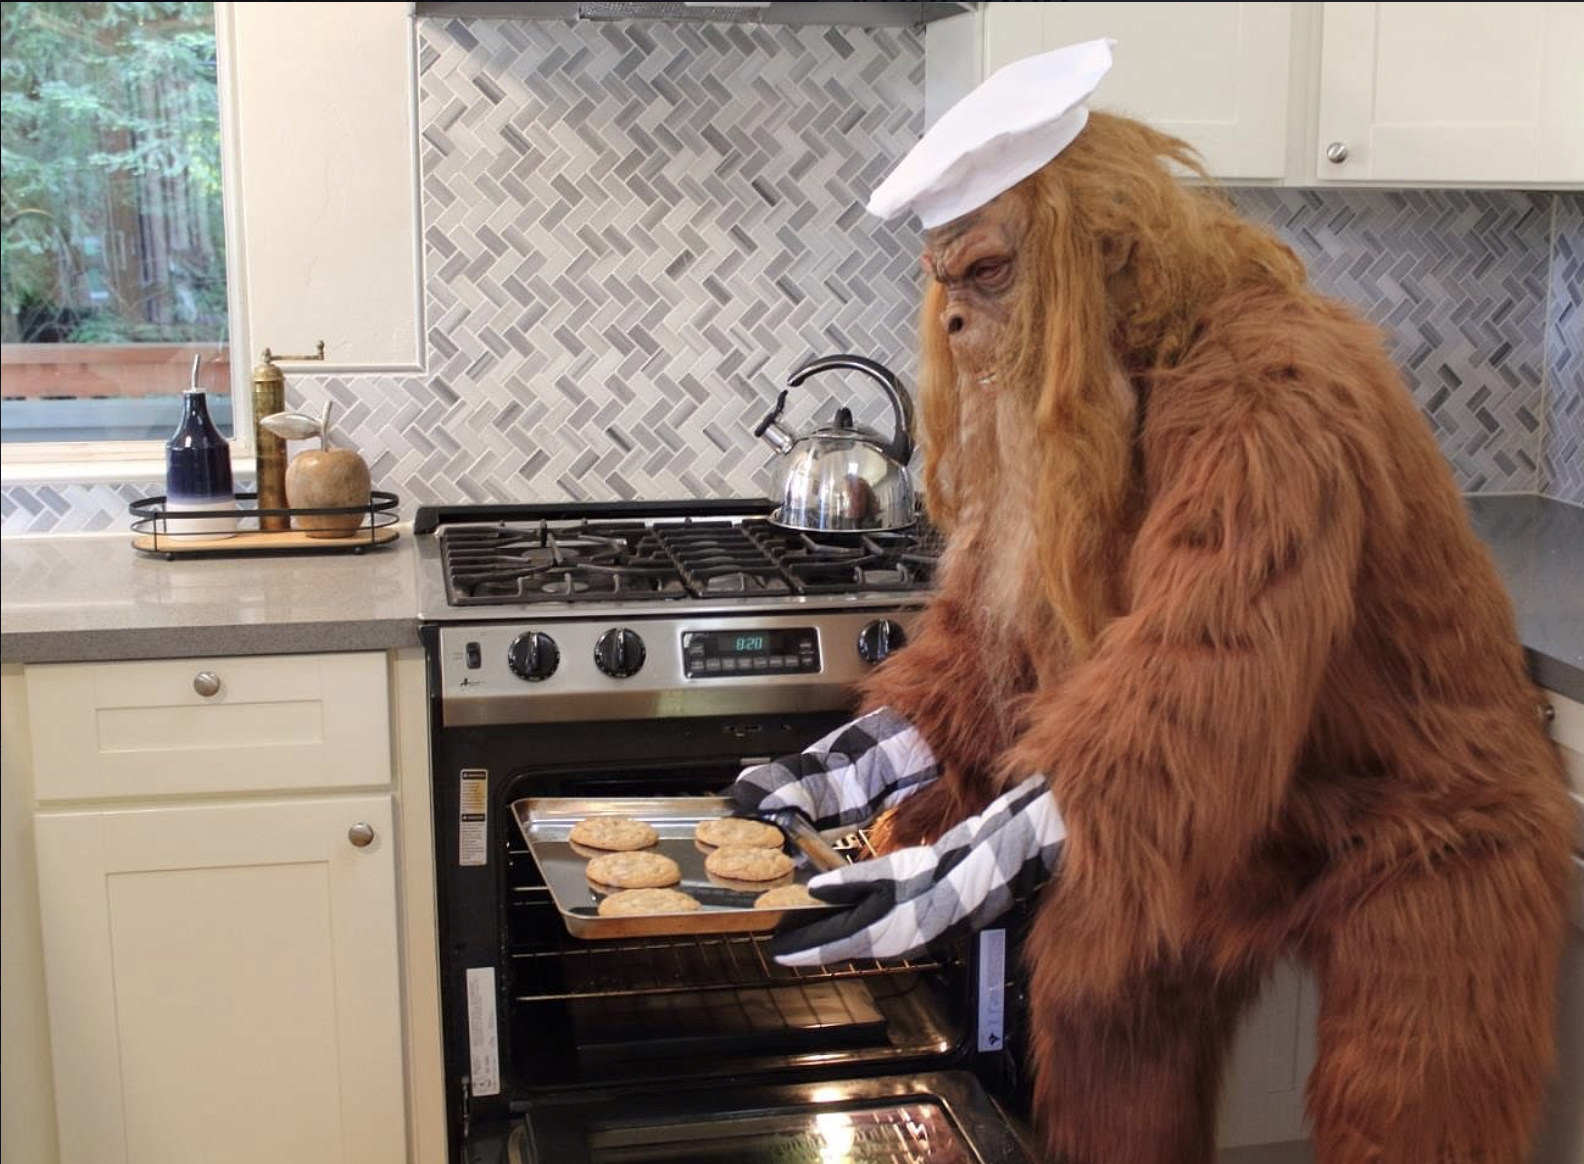 Real Estate Agent Goes Viral For Dressing Like Big Foot In Zillow Listing